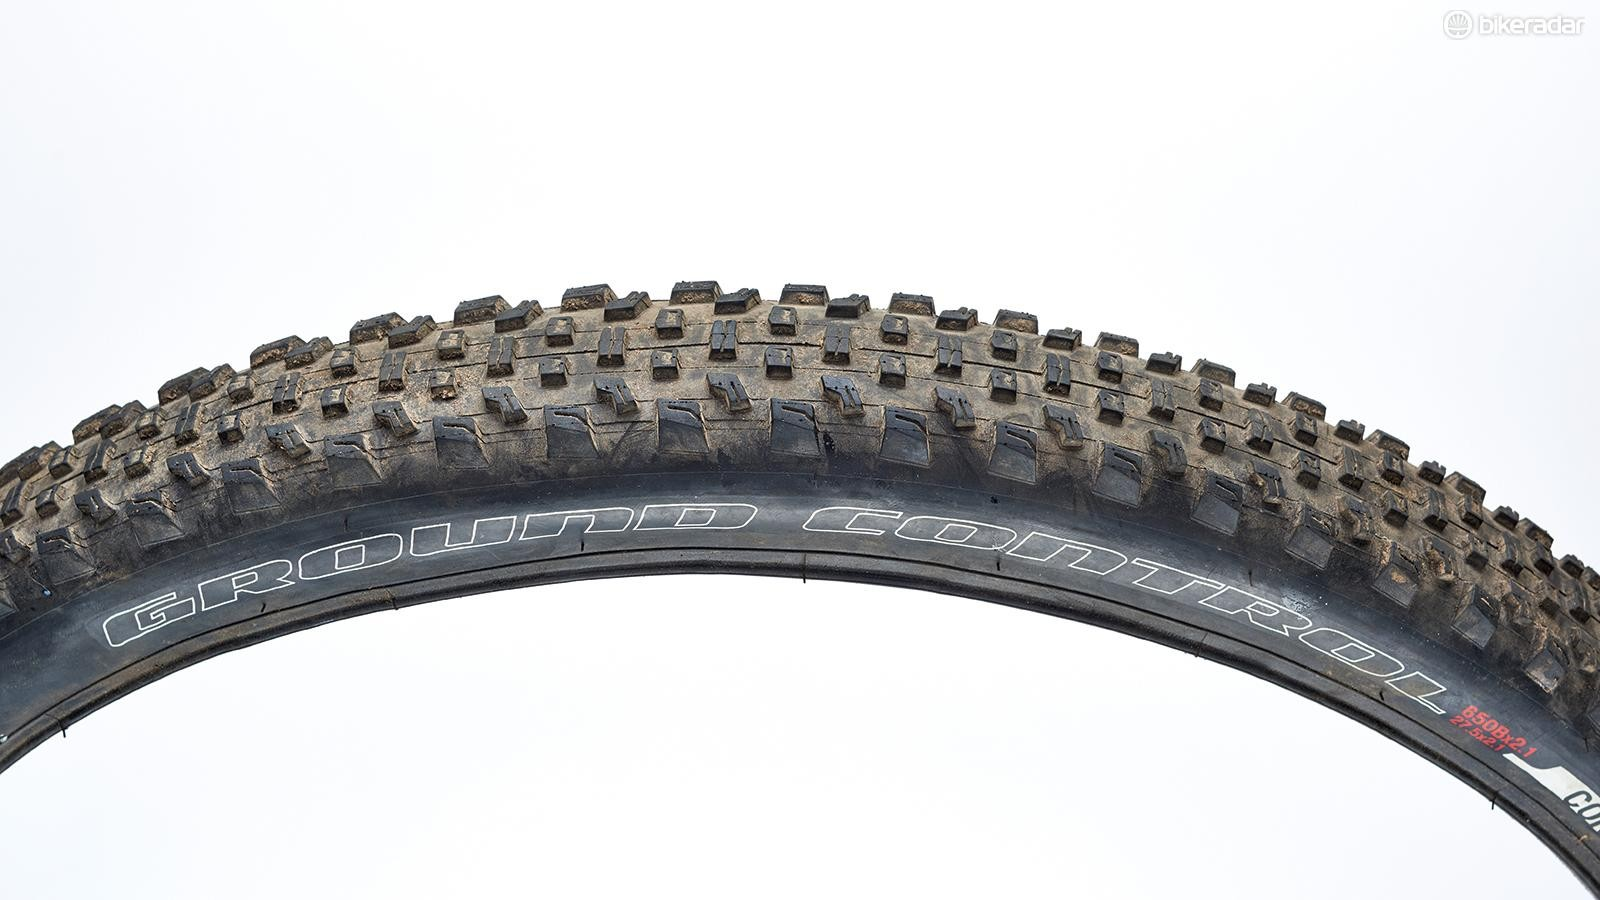 Specialized's Ground Control is a proven performer